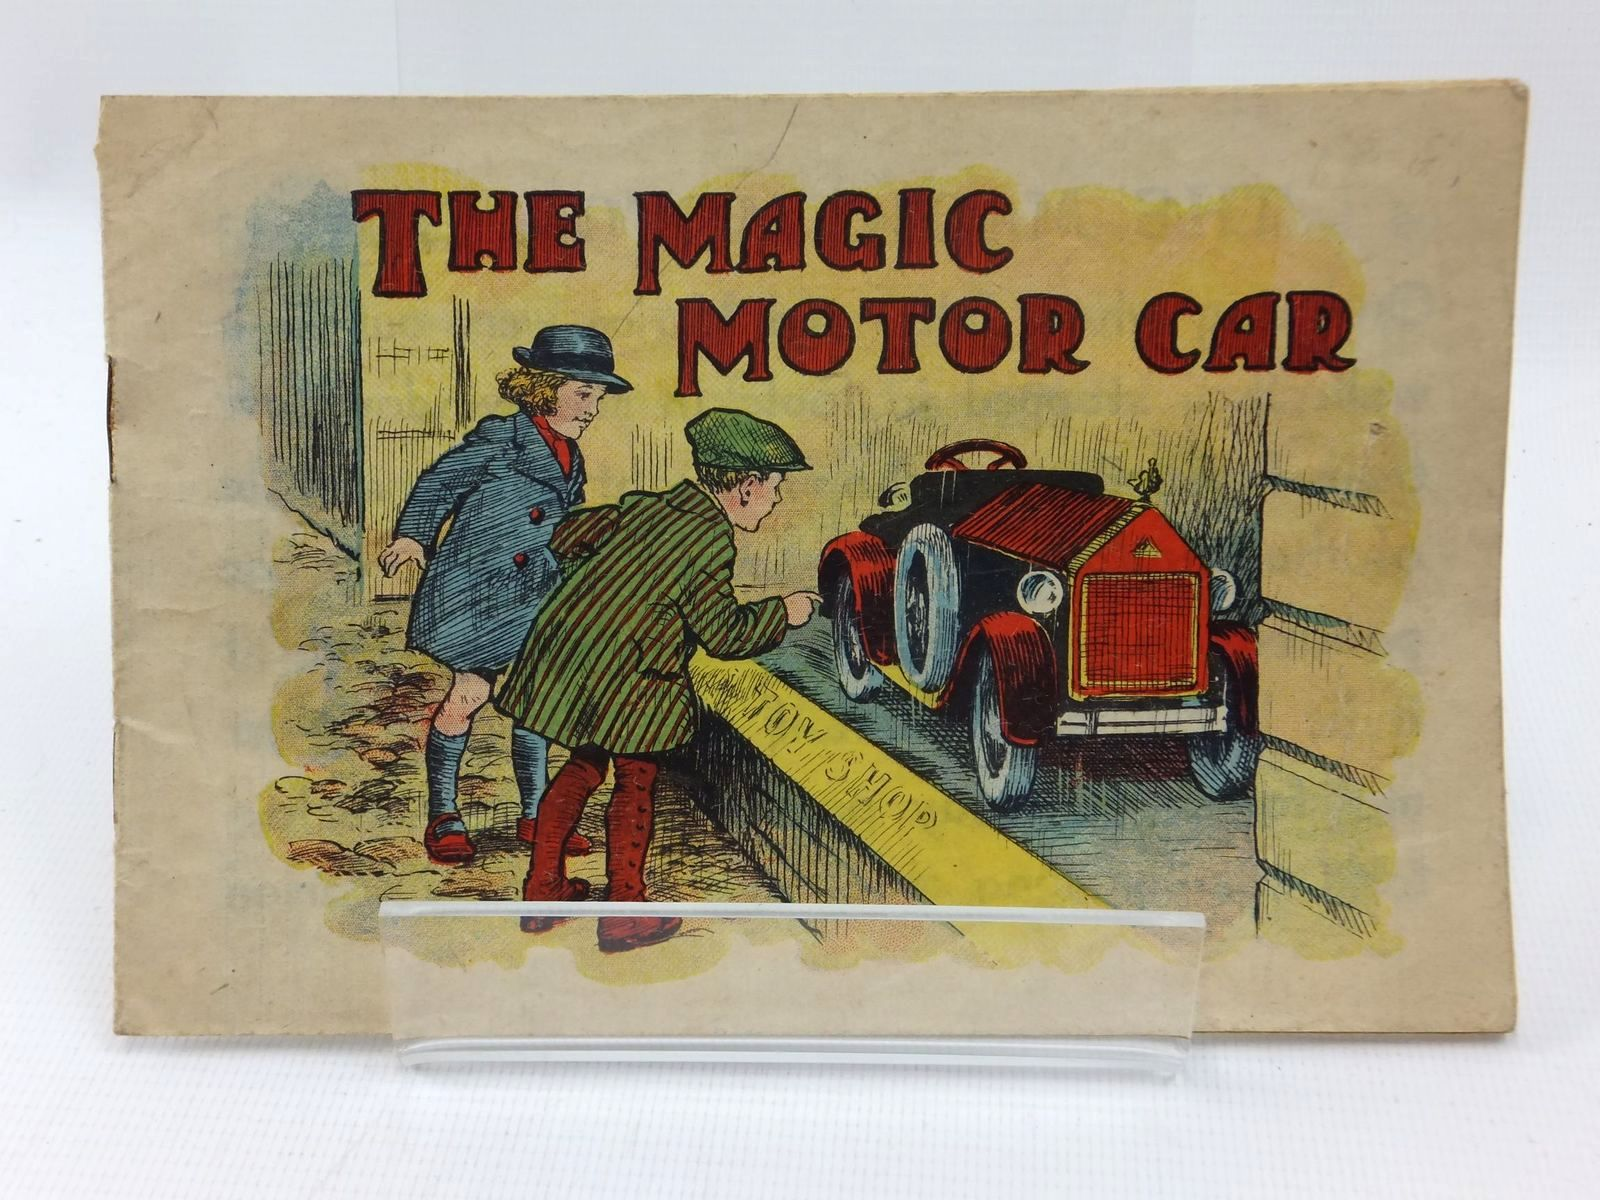 Photo of THE MAGIC MOTOR CAR published by R.A. Publishing Co. Ltd. (STOCK CODE: 1316878)  for sale by Stella & Rose's Books